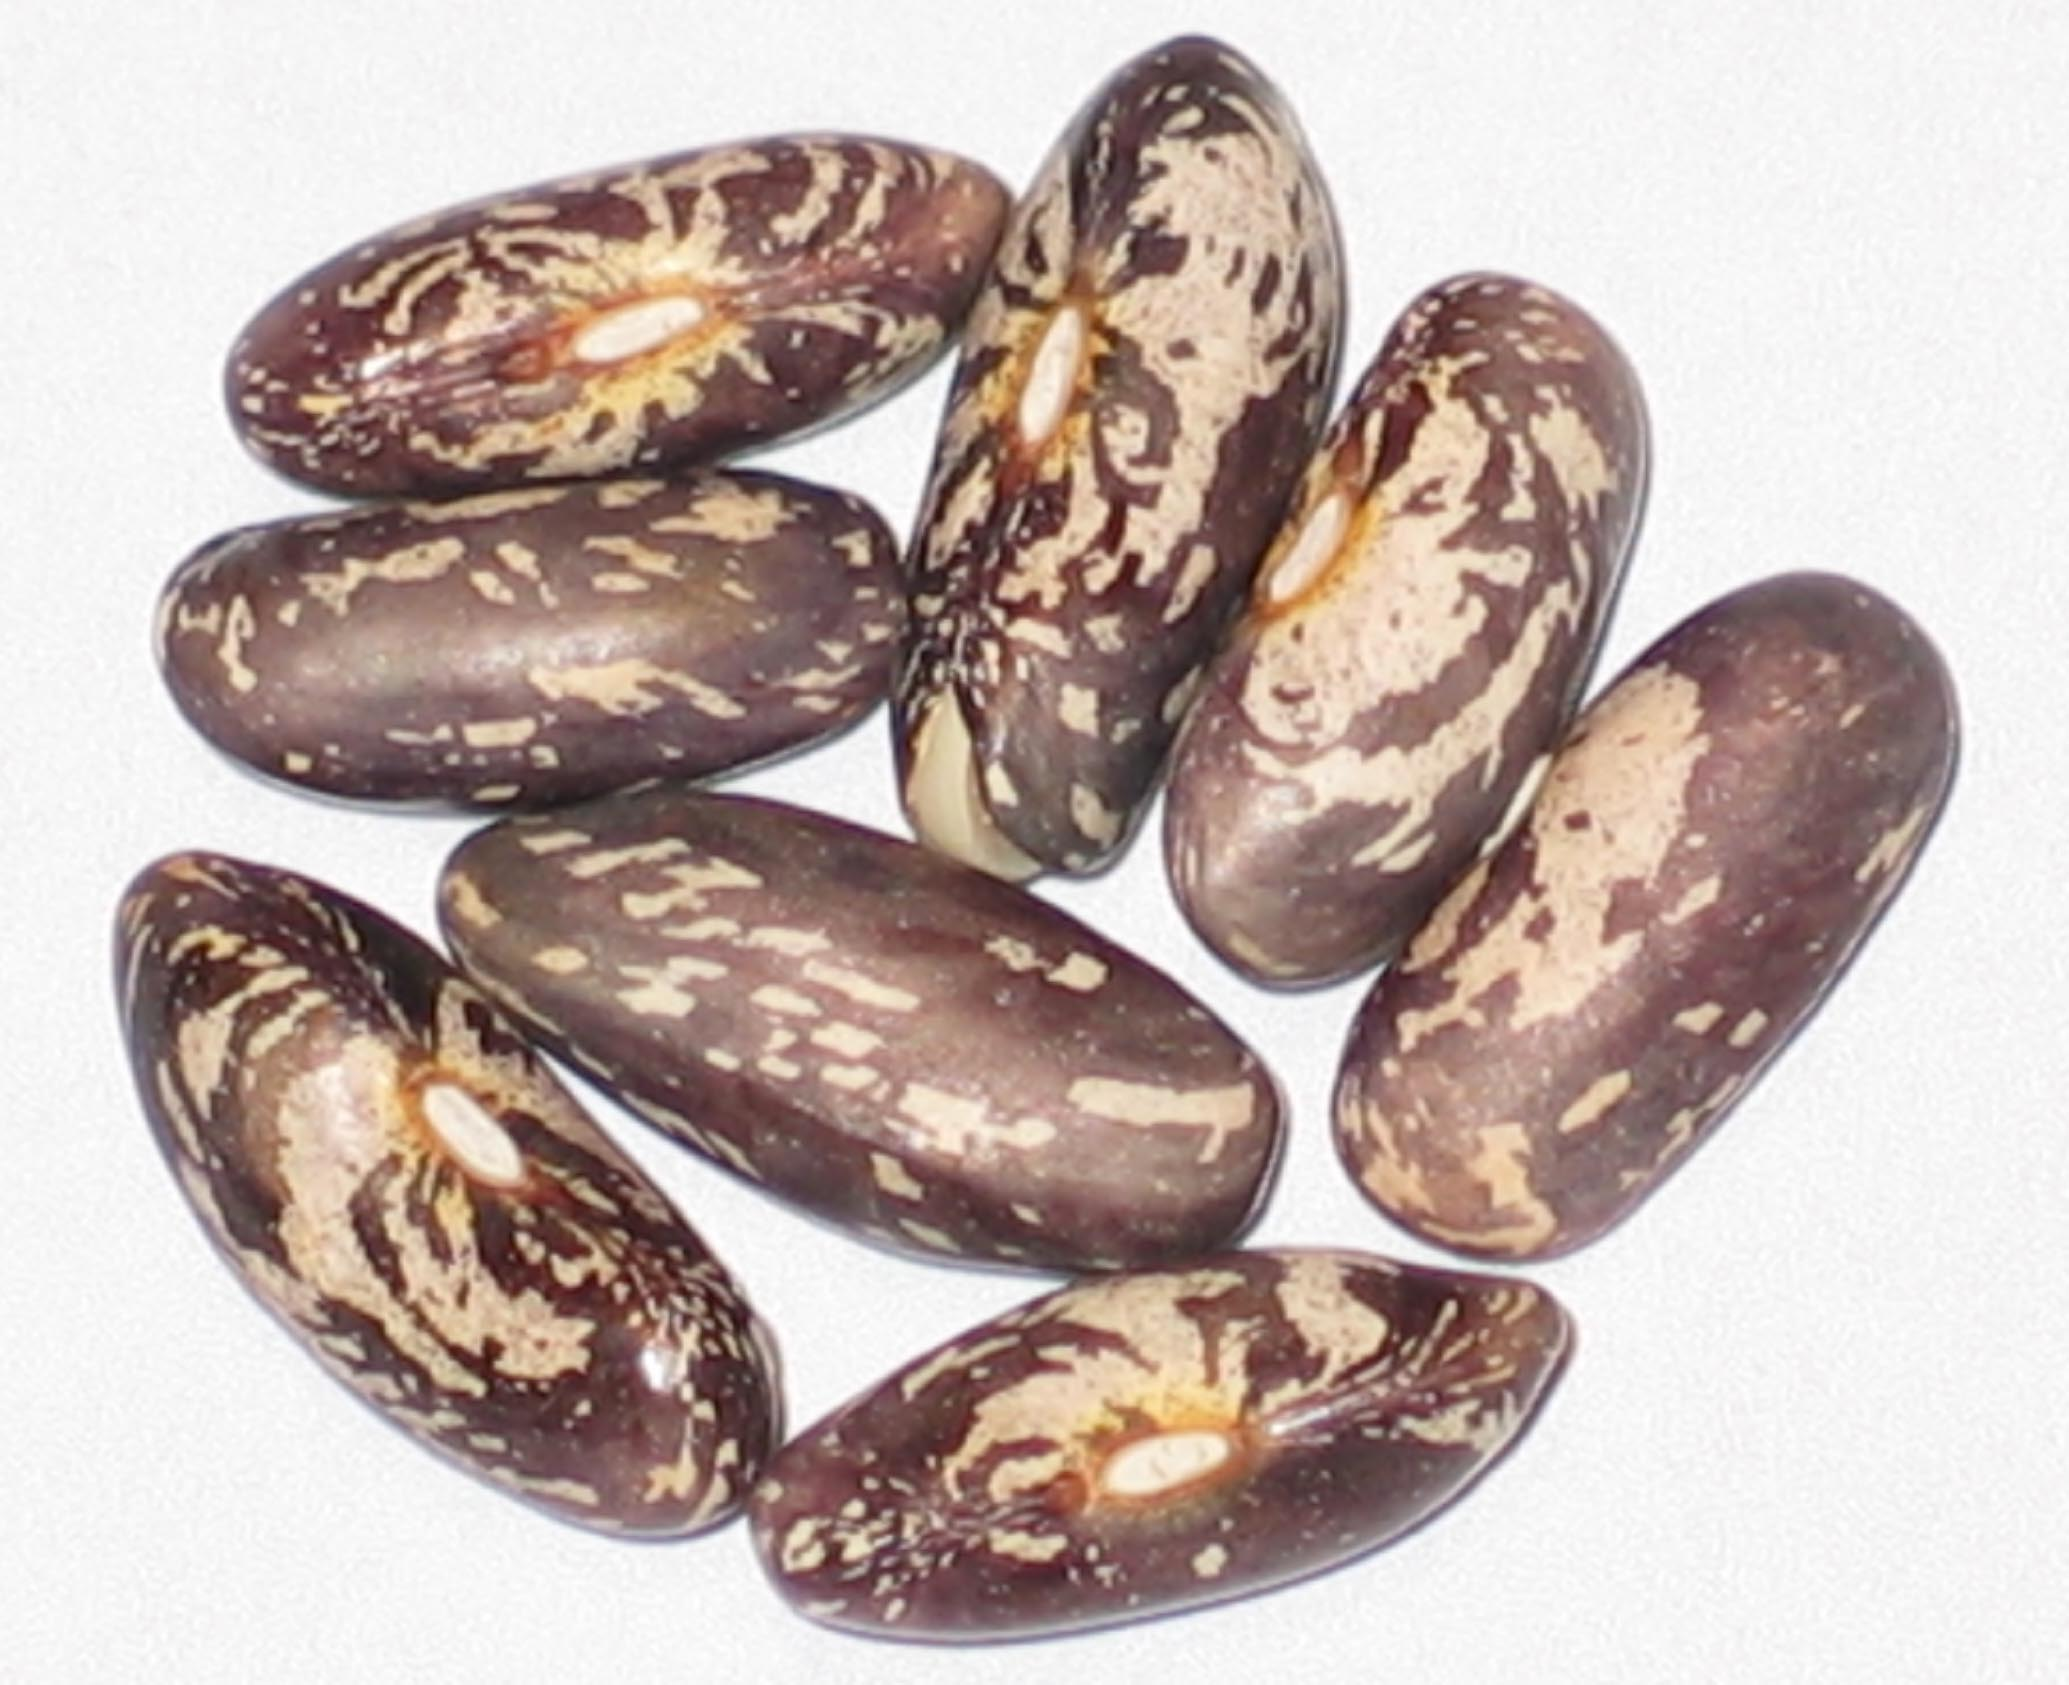 image of Seminole beans